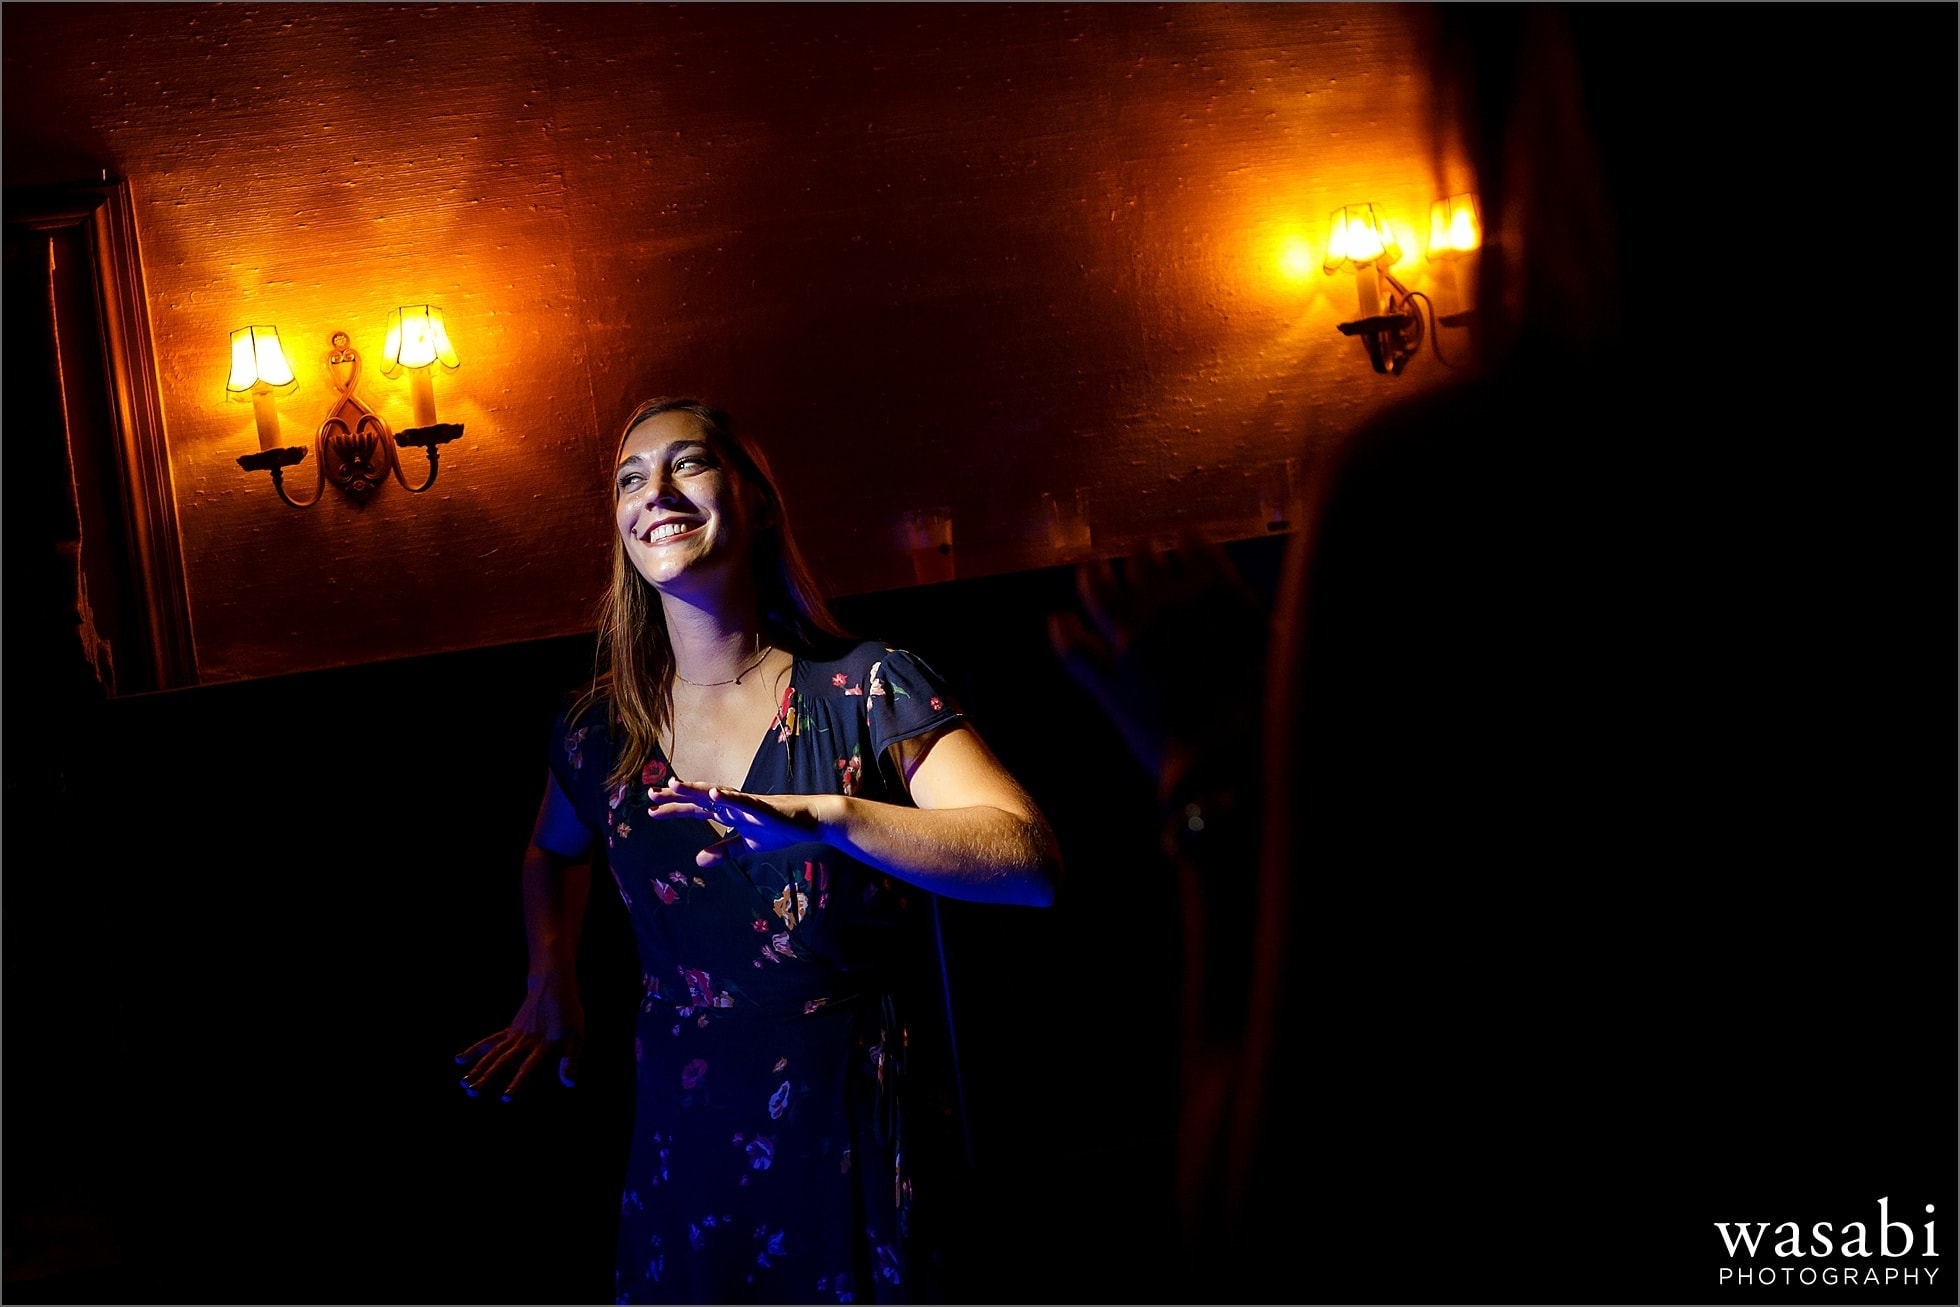 hard light wedding guest dancing photos during wedding reception at Cheney Mansion in Oak Park